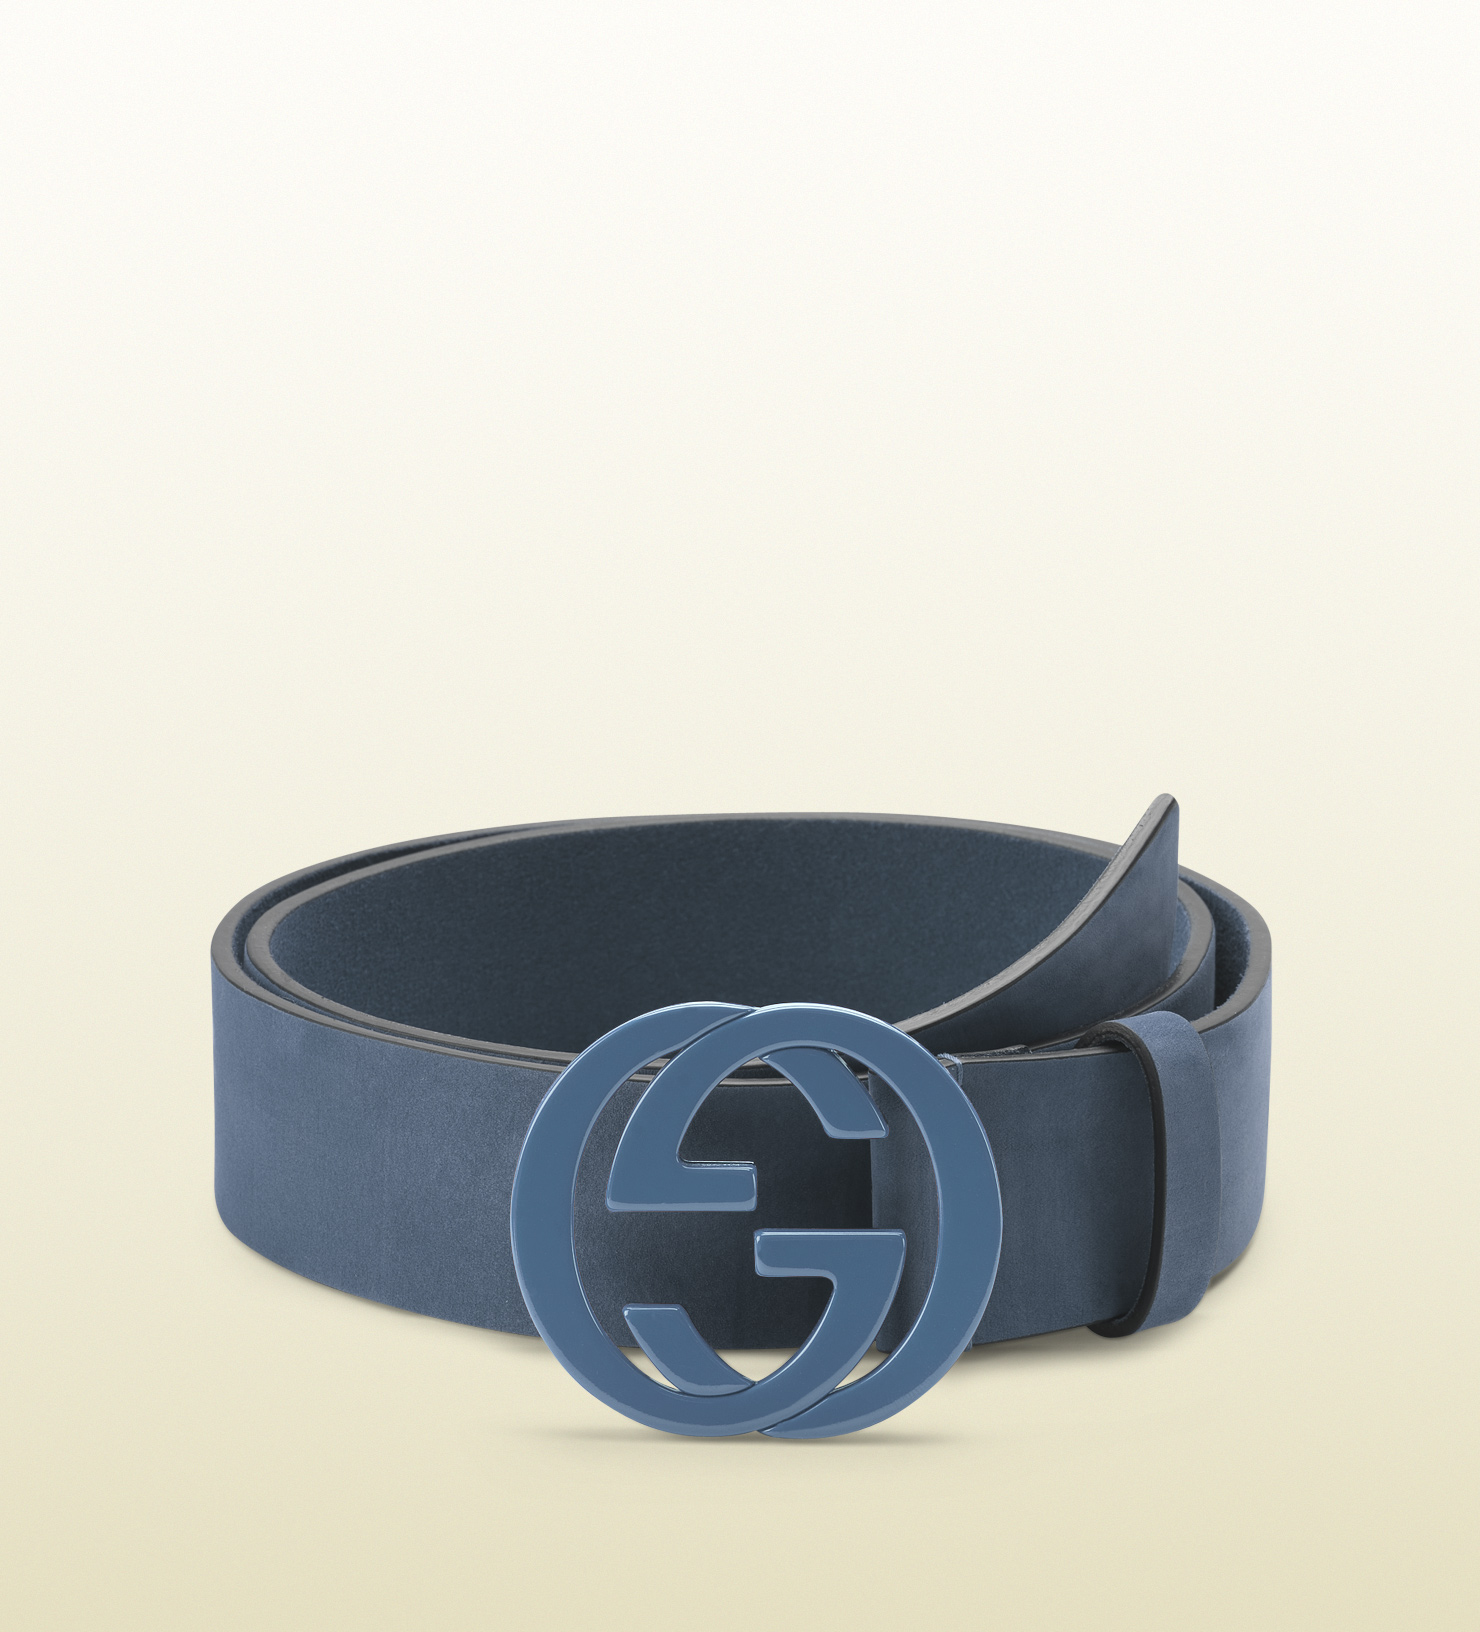 7665053e7e152 Lyst - Gucci Sky Blue Leather Belt with Interlocking G Buckle in ...